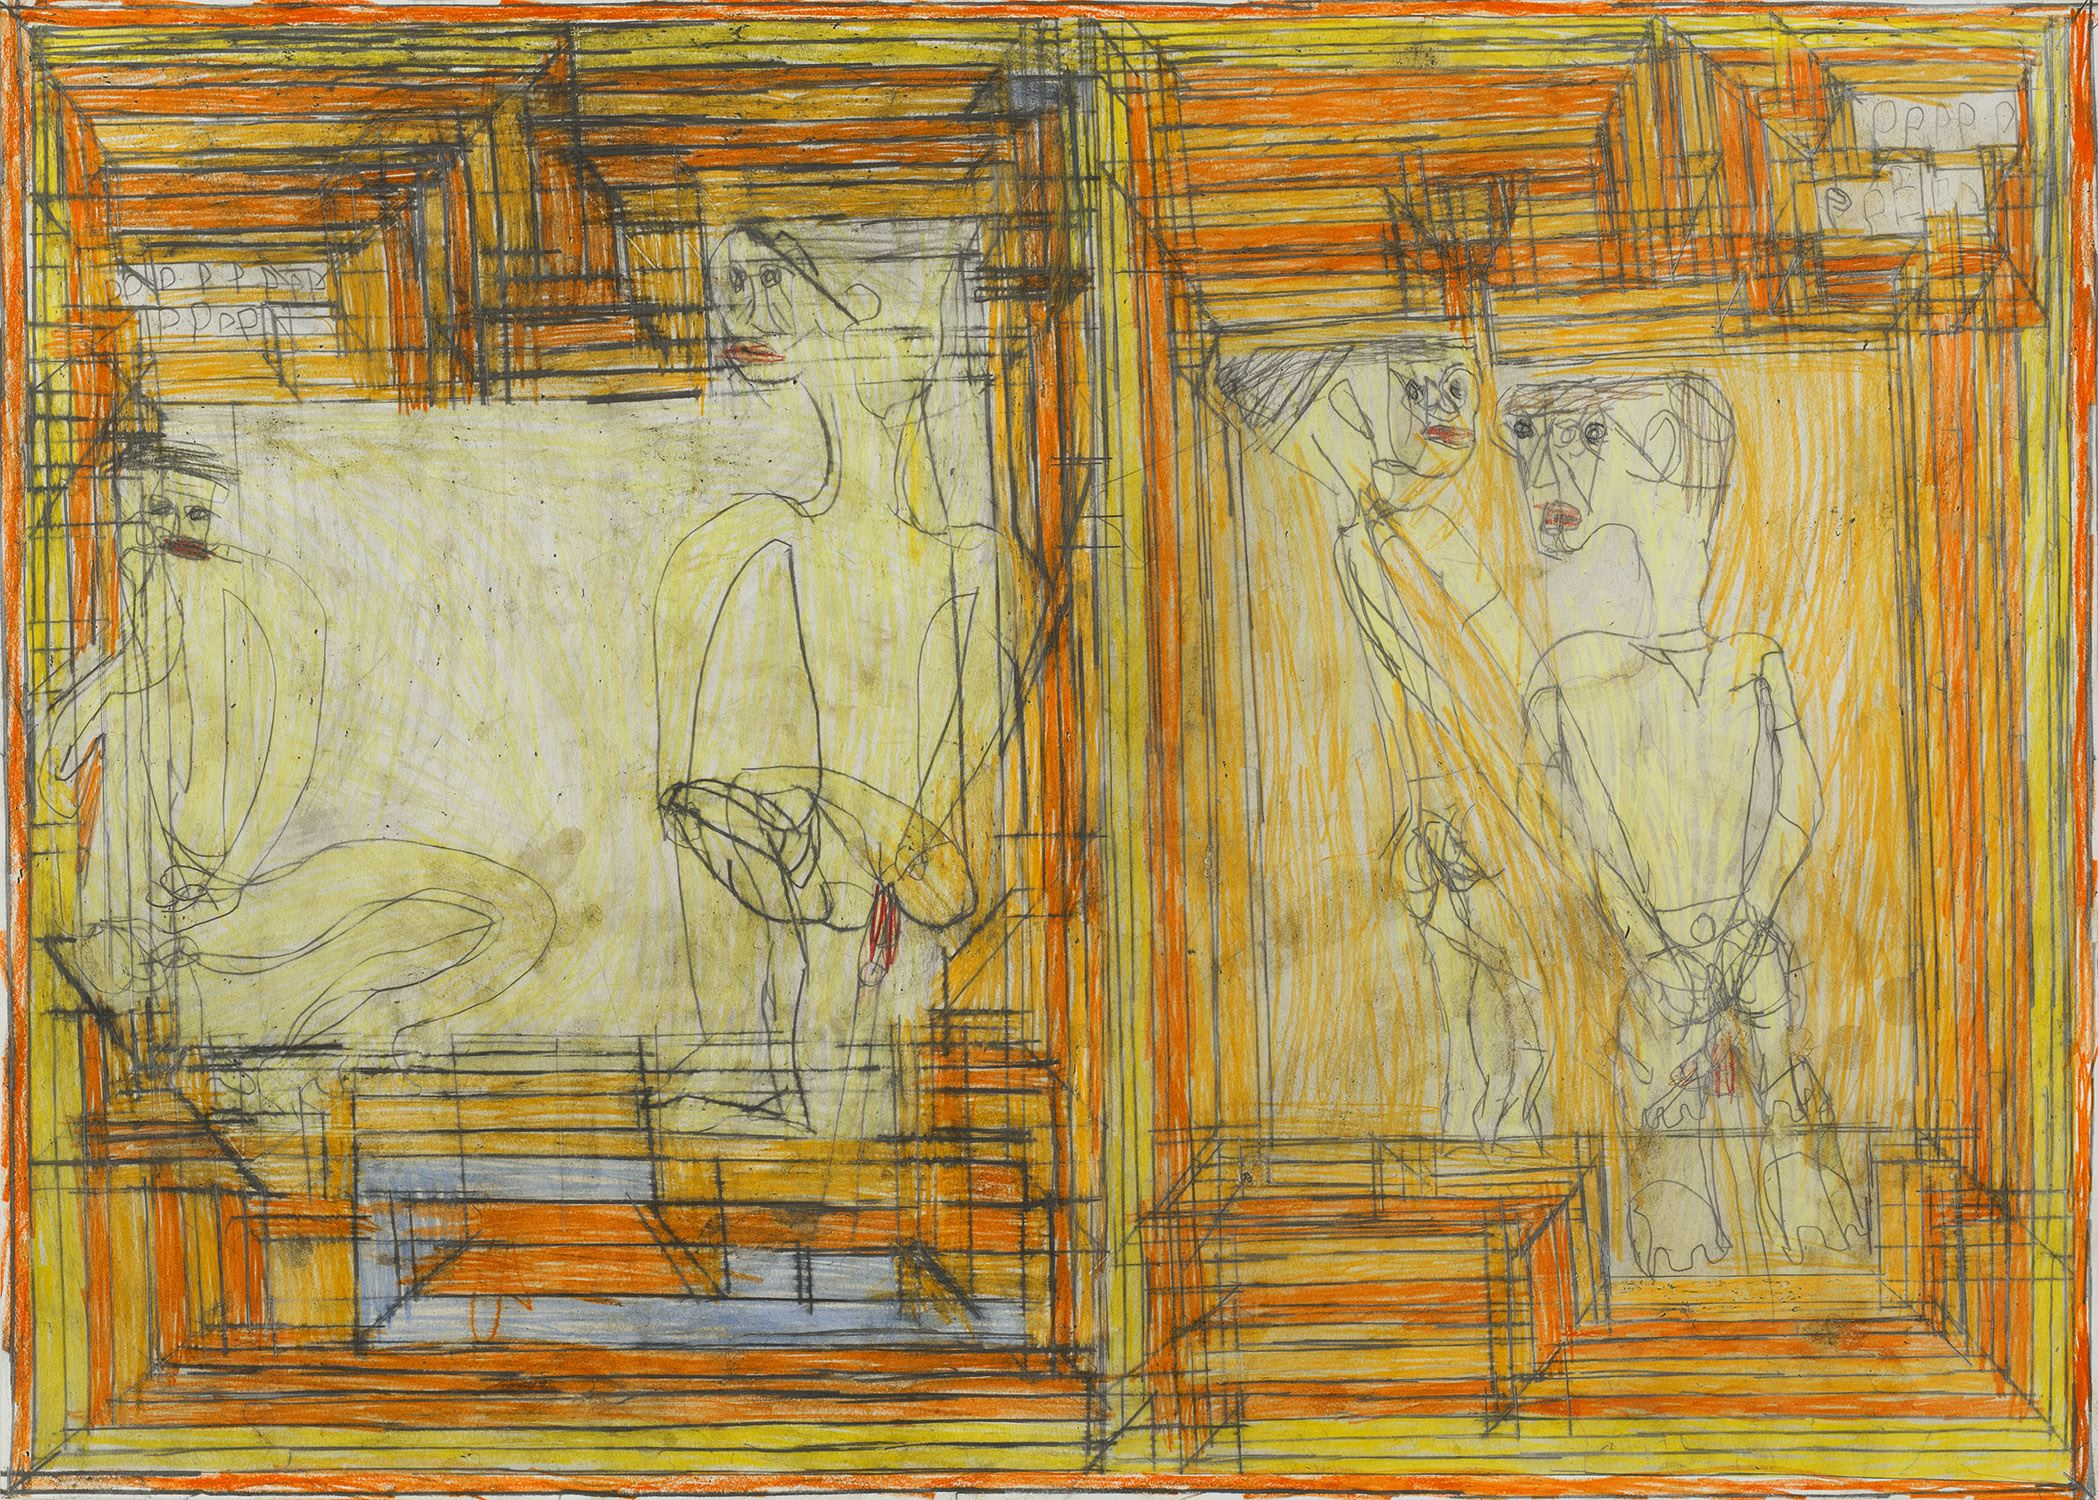 Josef Hofer Untitled, 2007 Pencil, colored pencil on paper 19.69 x 27.56 inches 50 x 70 cm JHo 33